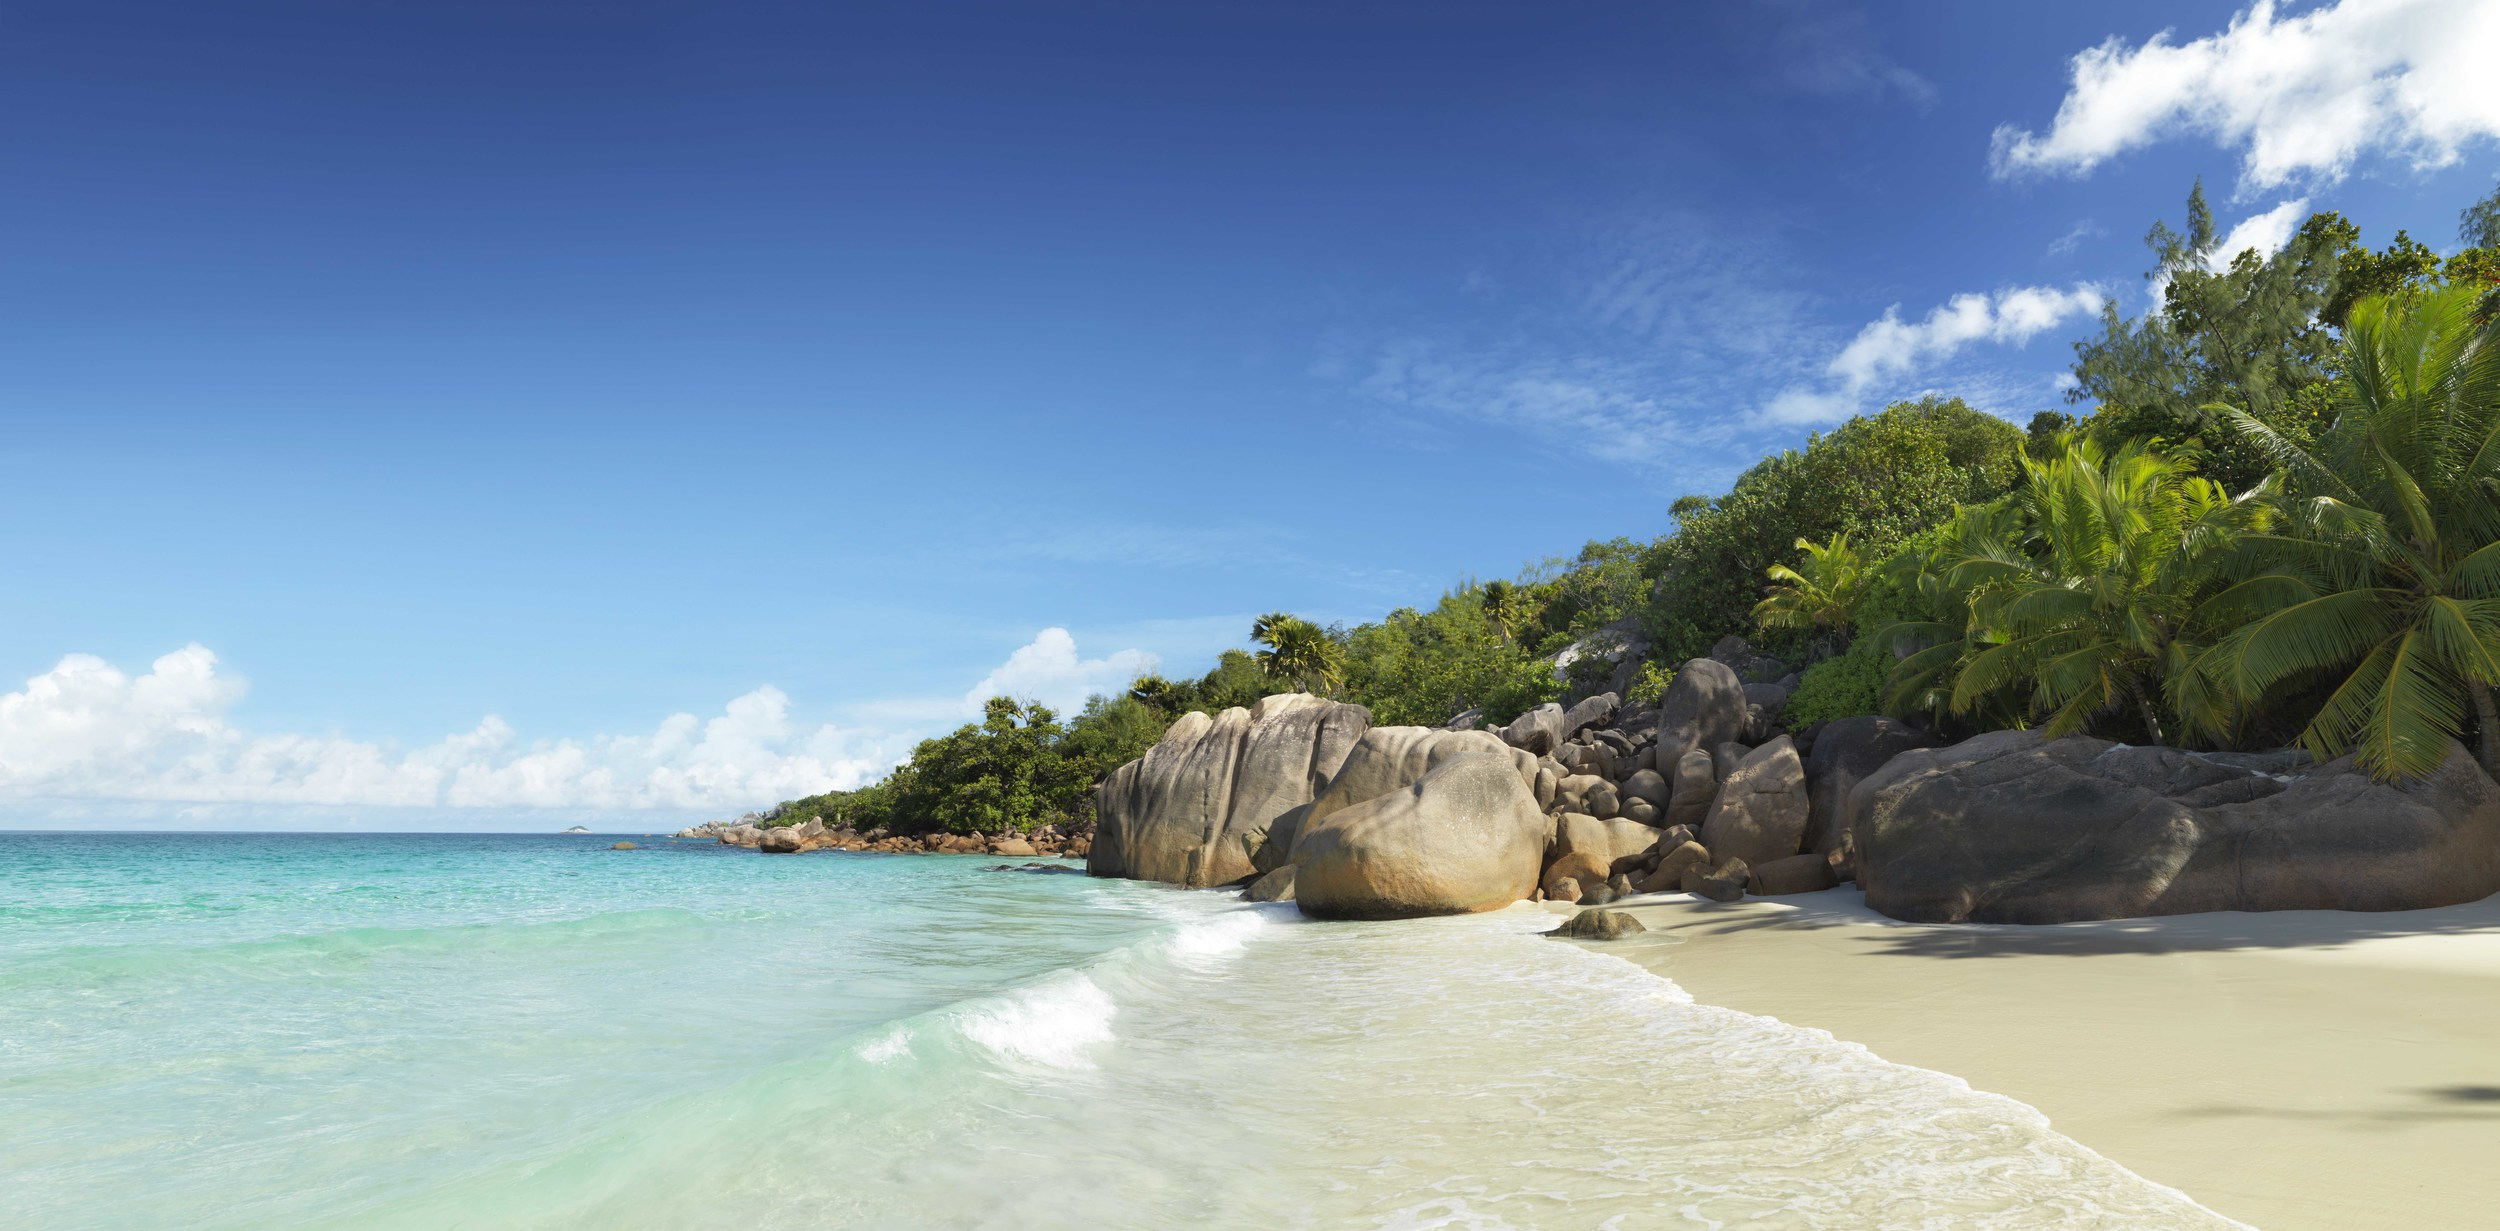 Anse Lazio Beach (Voted Top Ten Beaches in the World)